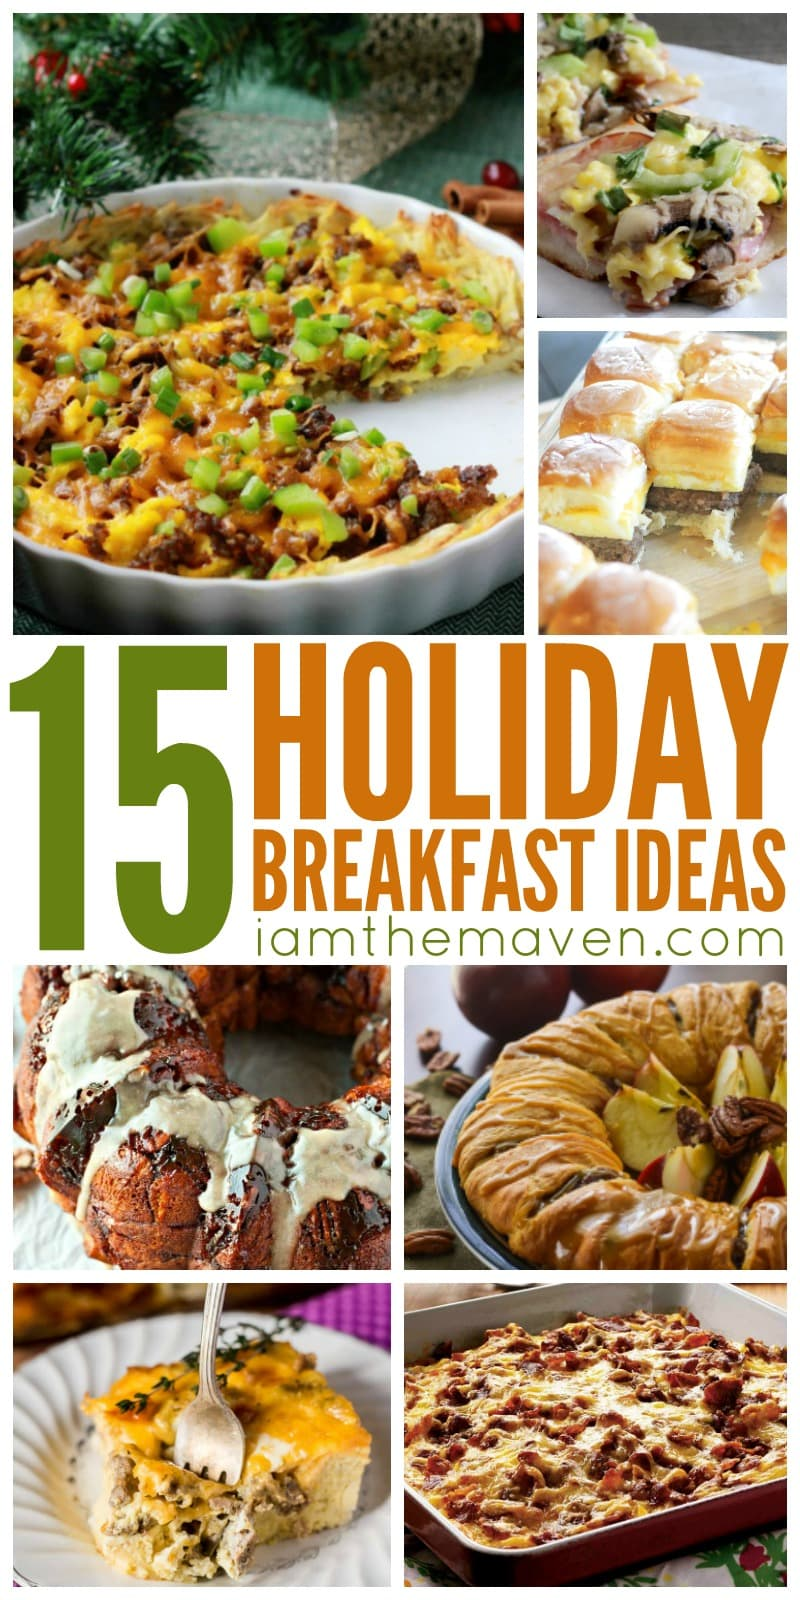 These holiday breakfast ideas are perfect for your family or a crowd!